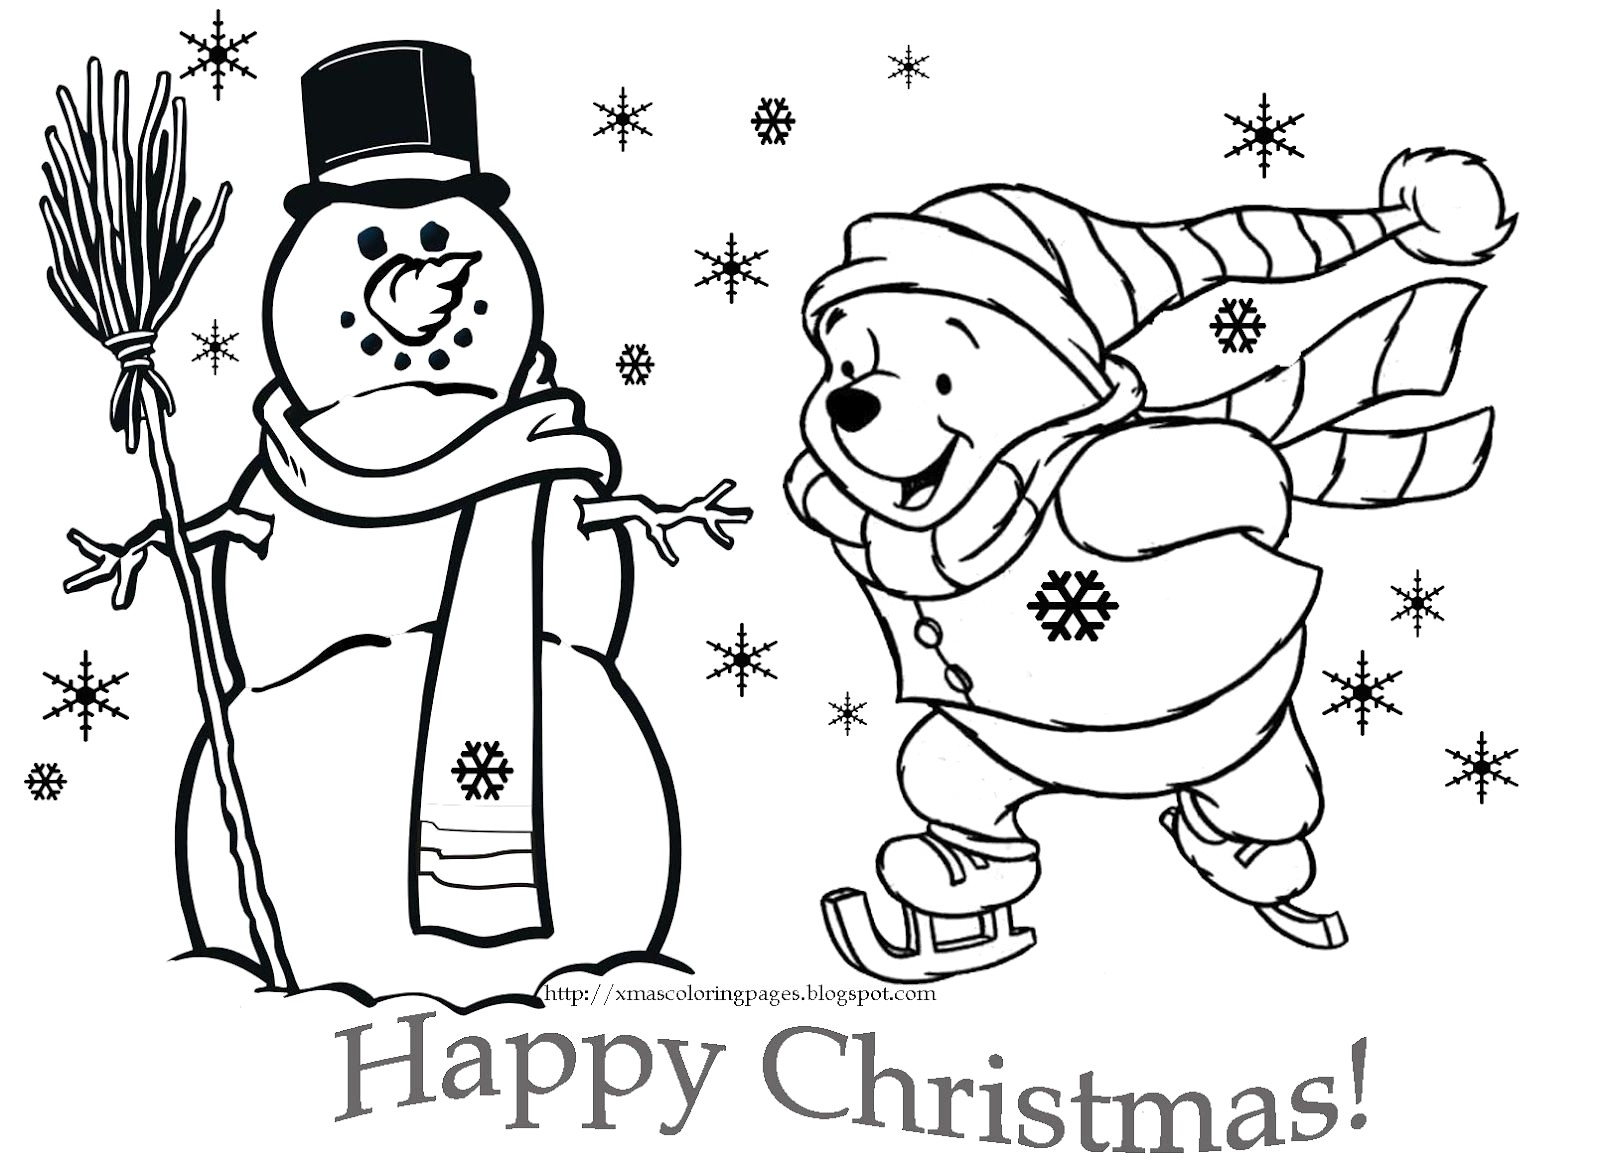 Cute Christmas Coloring Pages Cute Disney Christmas Coloring Pages Thanhhoacar